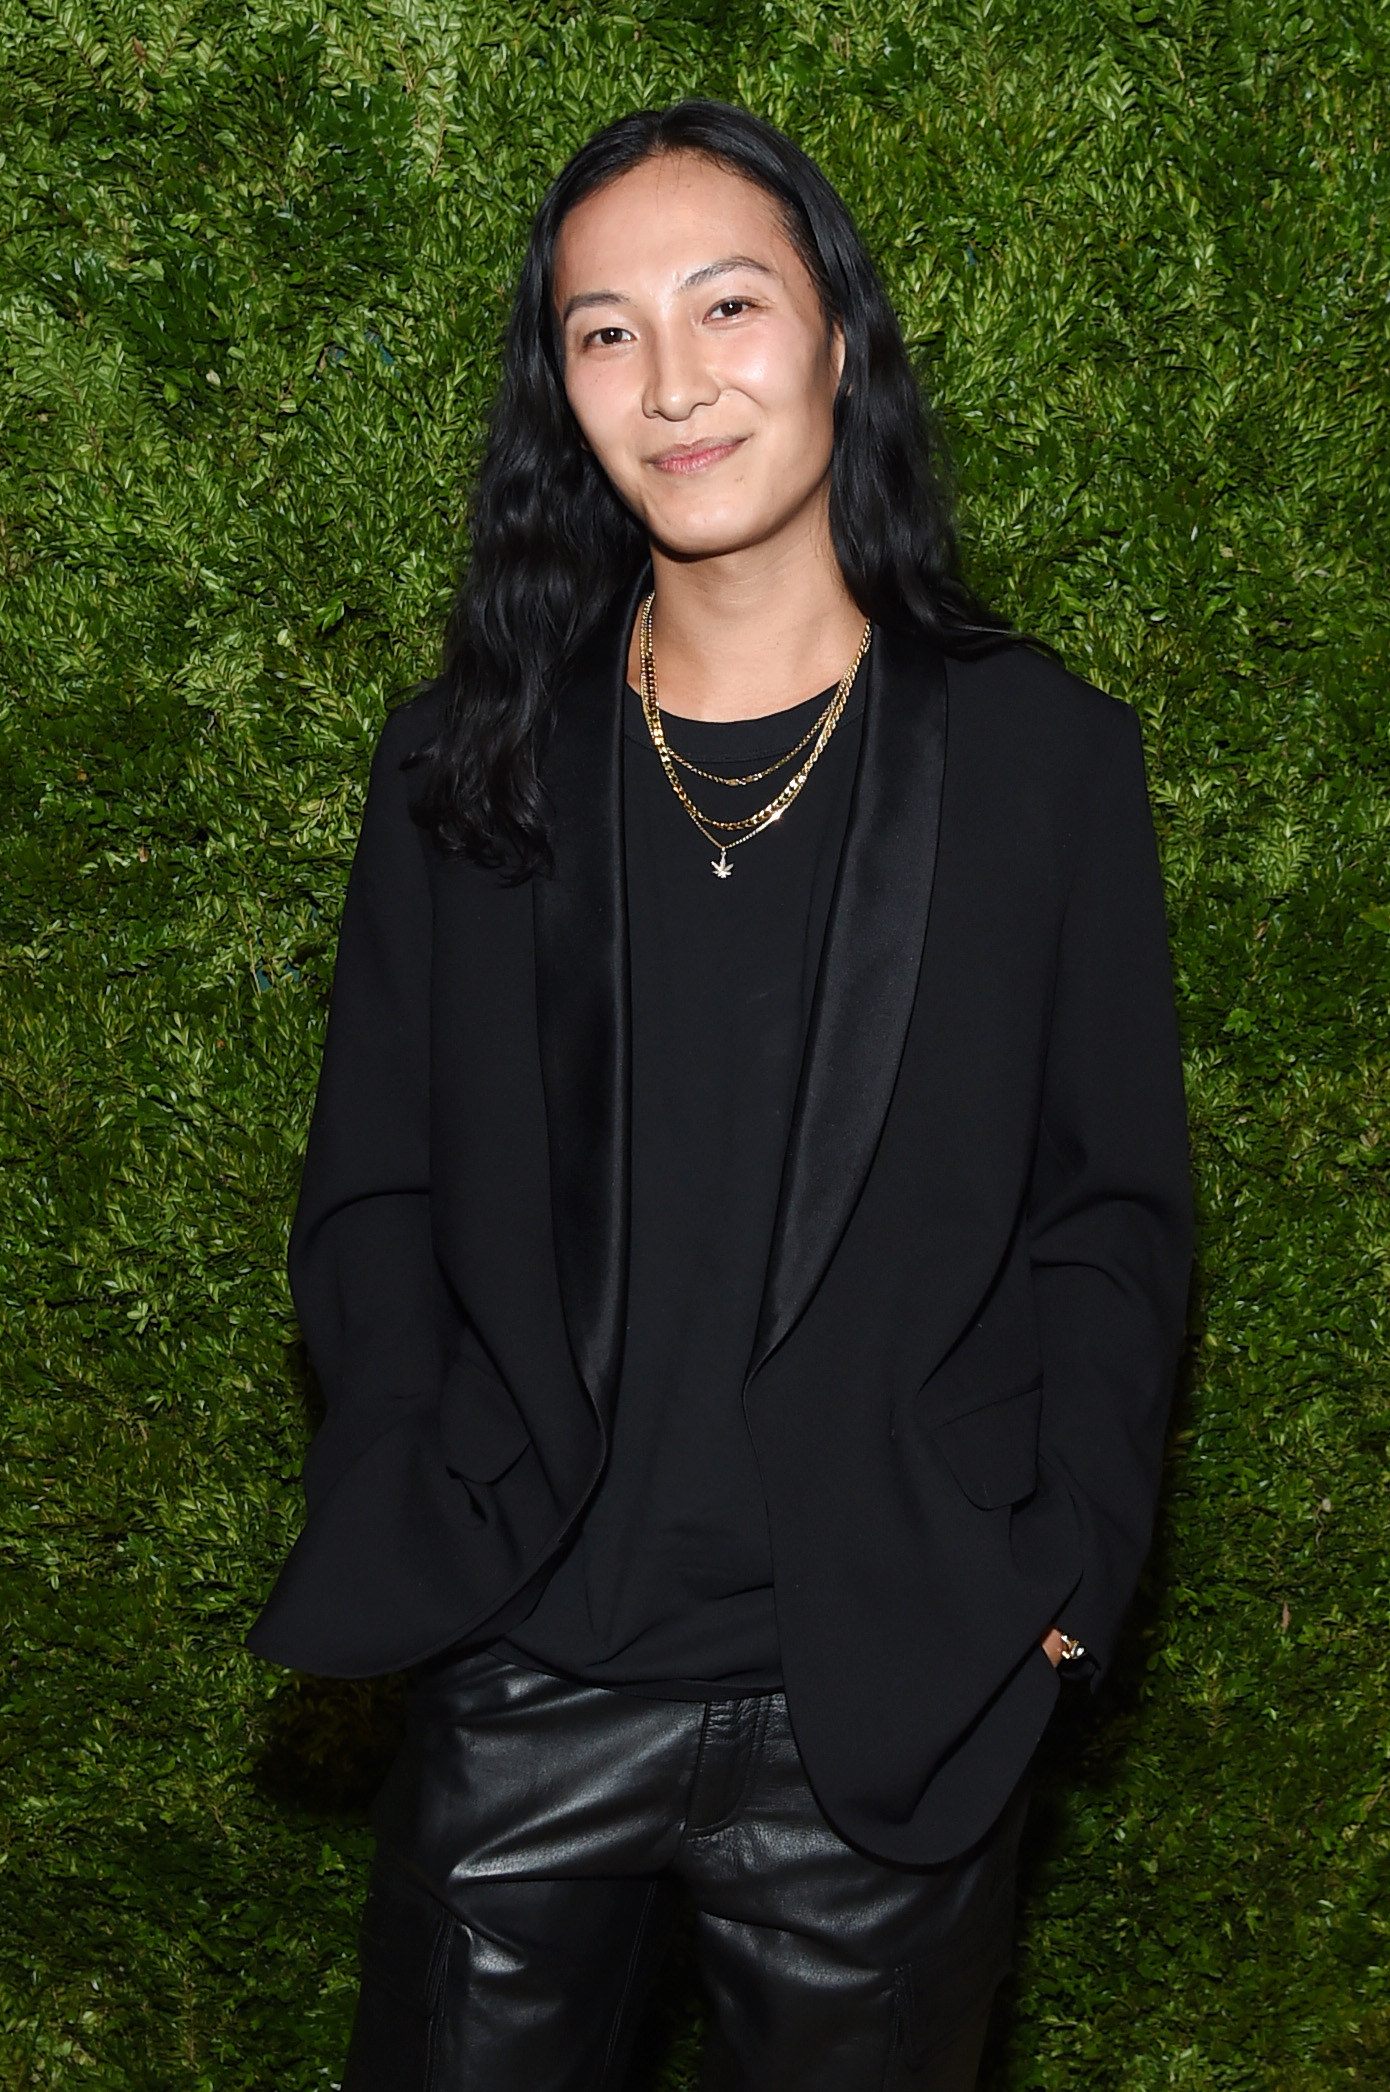 Wang at the Vogue Fashion Fund 2019 Awards in New York City